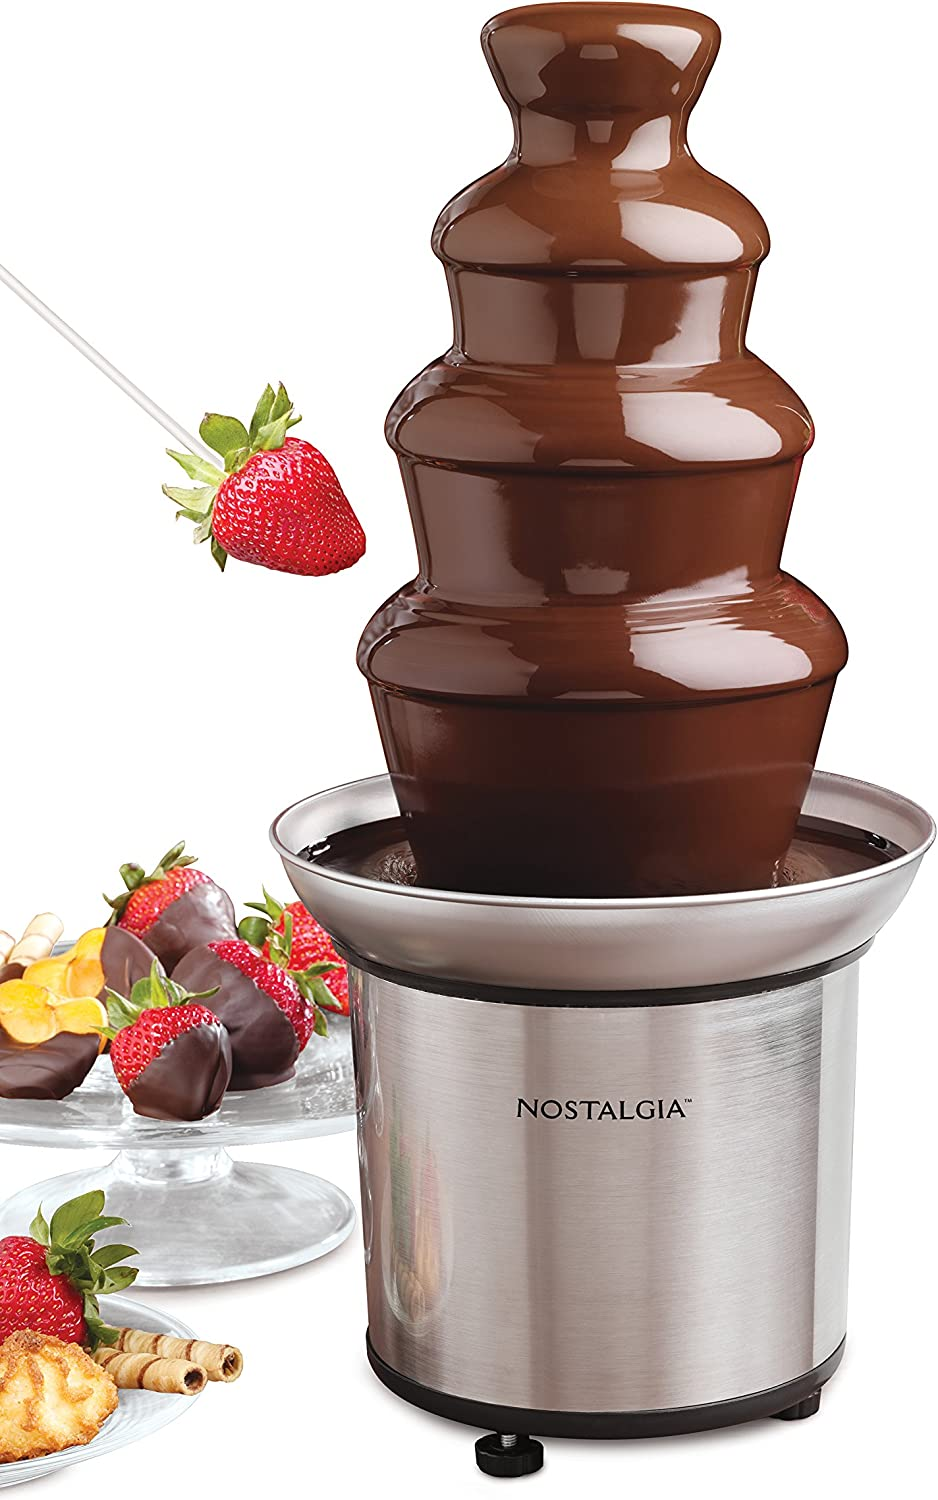 Nostalgia Cff986 32 Ounce Stainless Steel Chocolate Fondue Fountain 2 Pound Capacity Easy To Assemble 4 Tiers Perfect For Nacho Cheese Bbq Sauce Ranch Liqueurs Home Kitchen